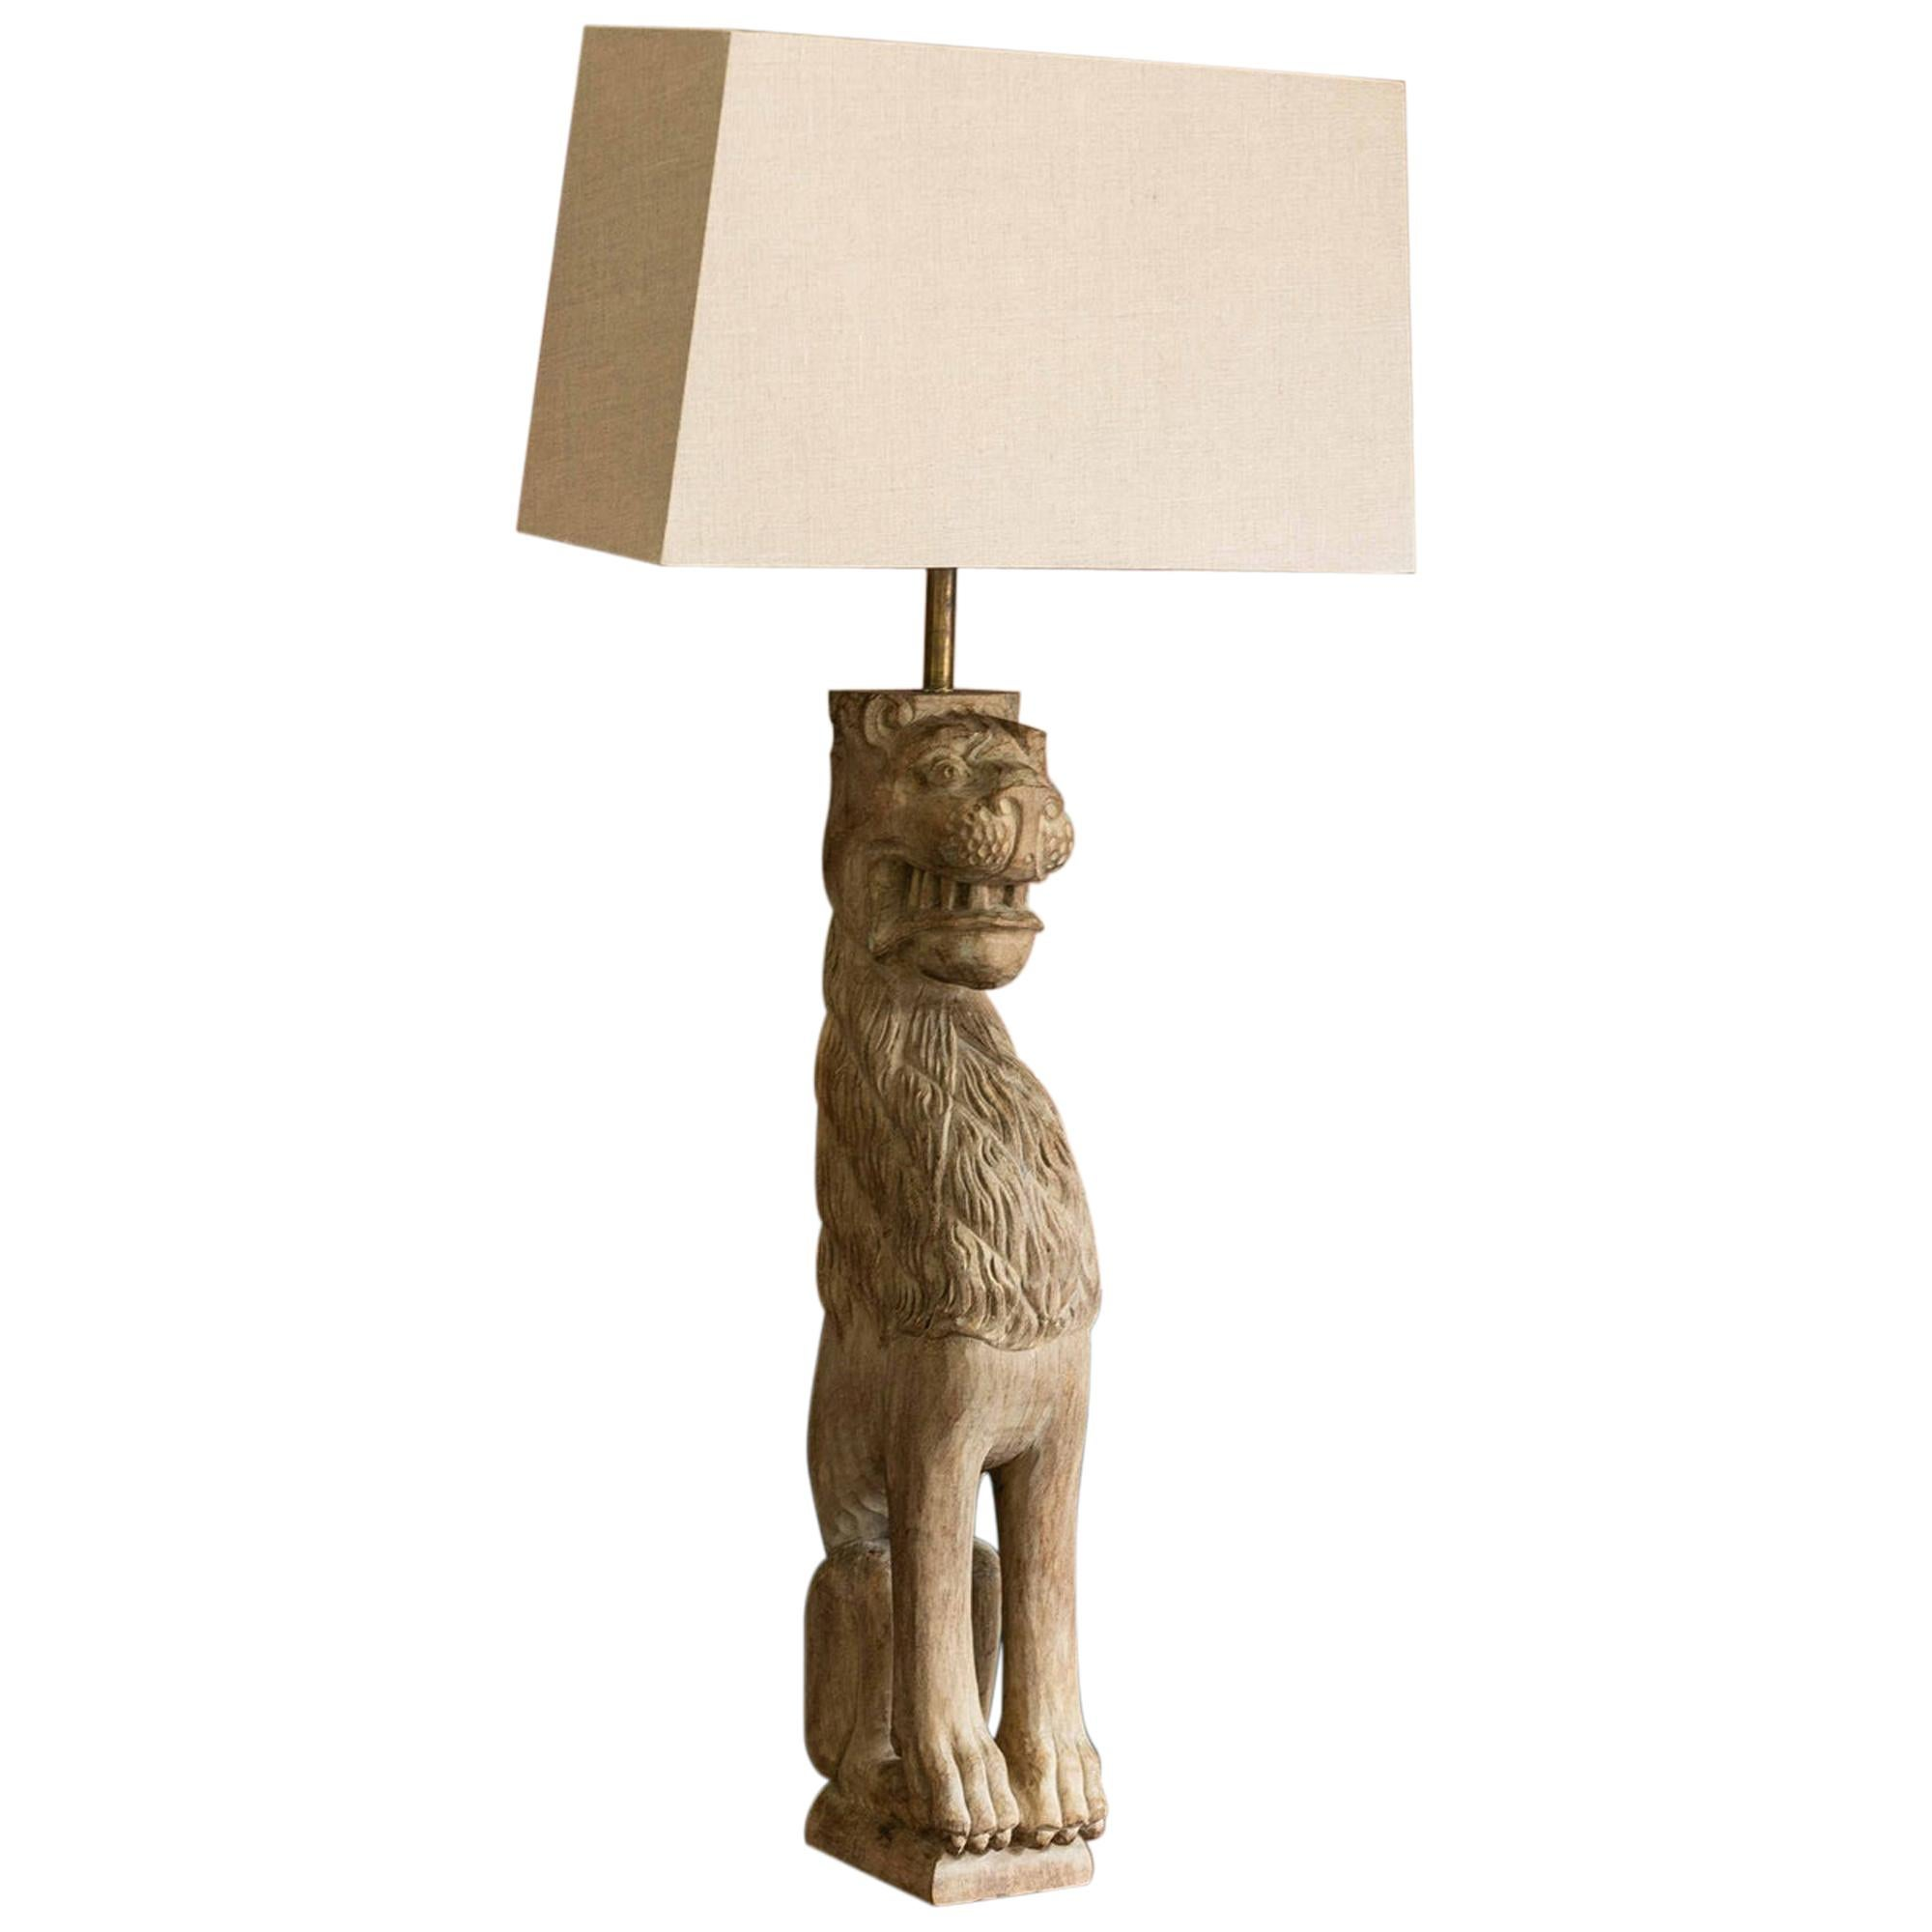 18th Century English Large Carved Oak Lion Table Lamp